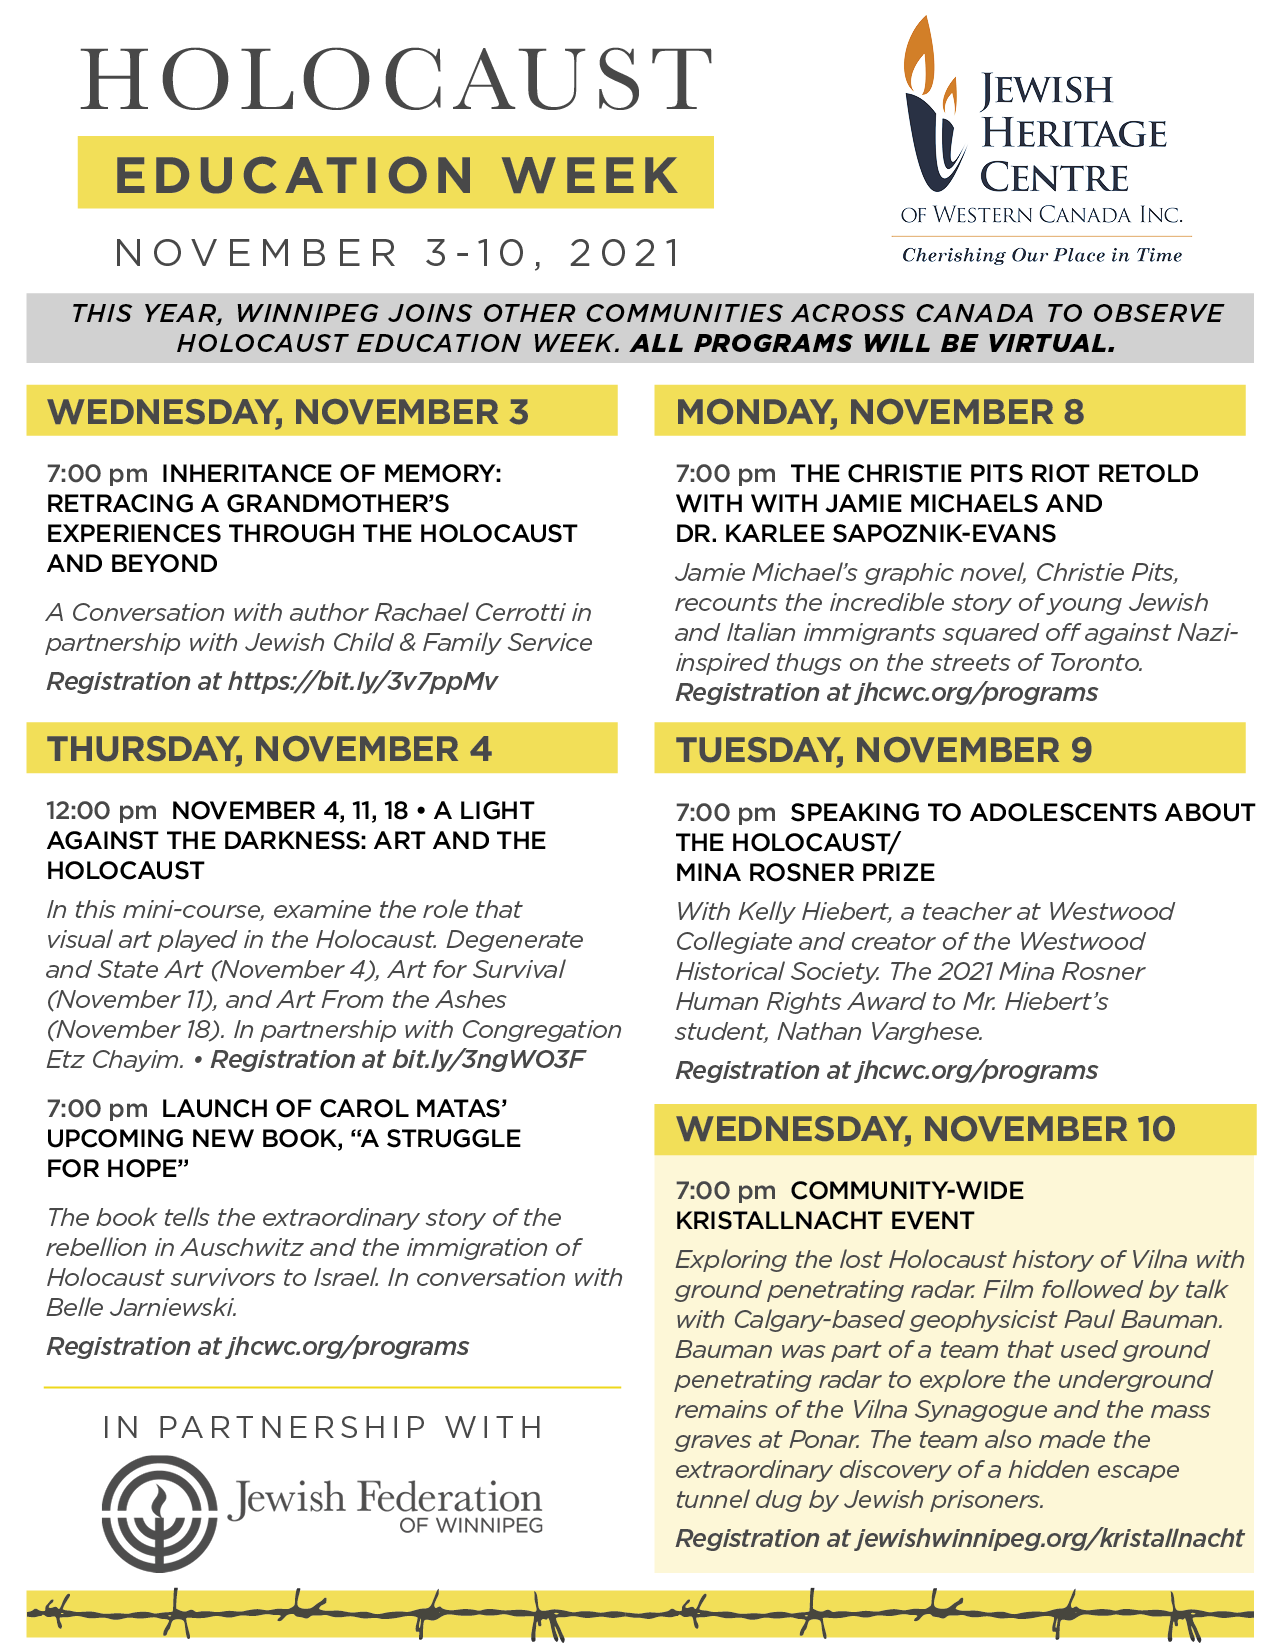 JFW21 HolAwarWeek flyer.png